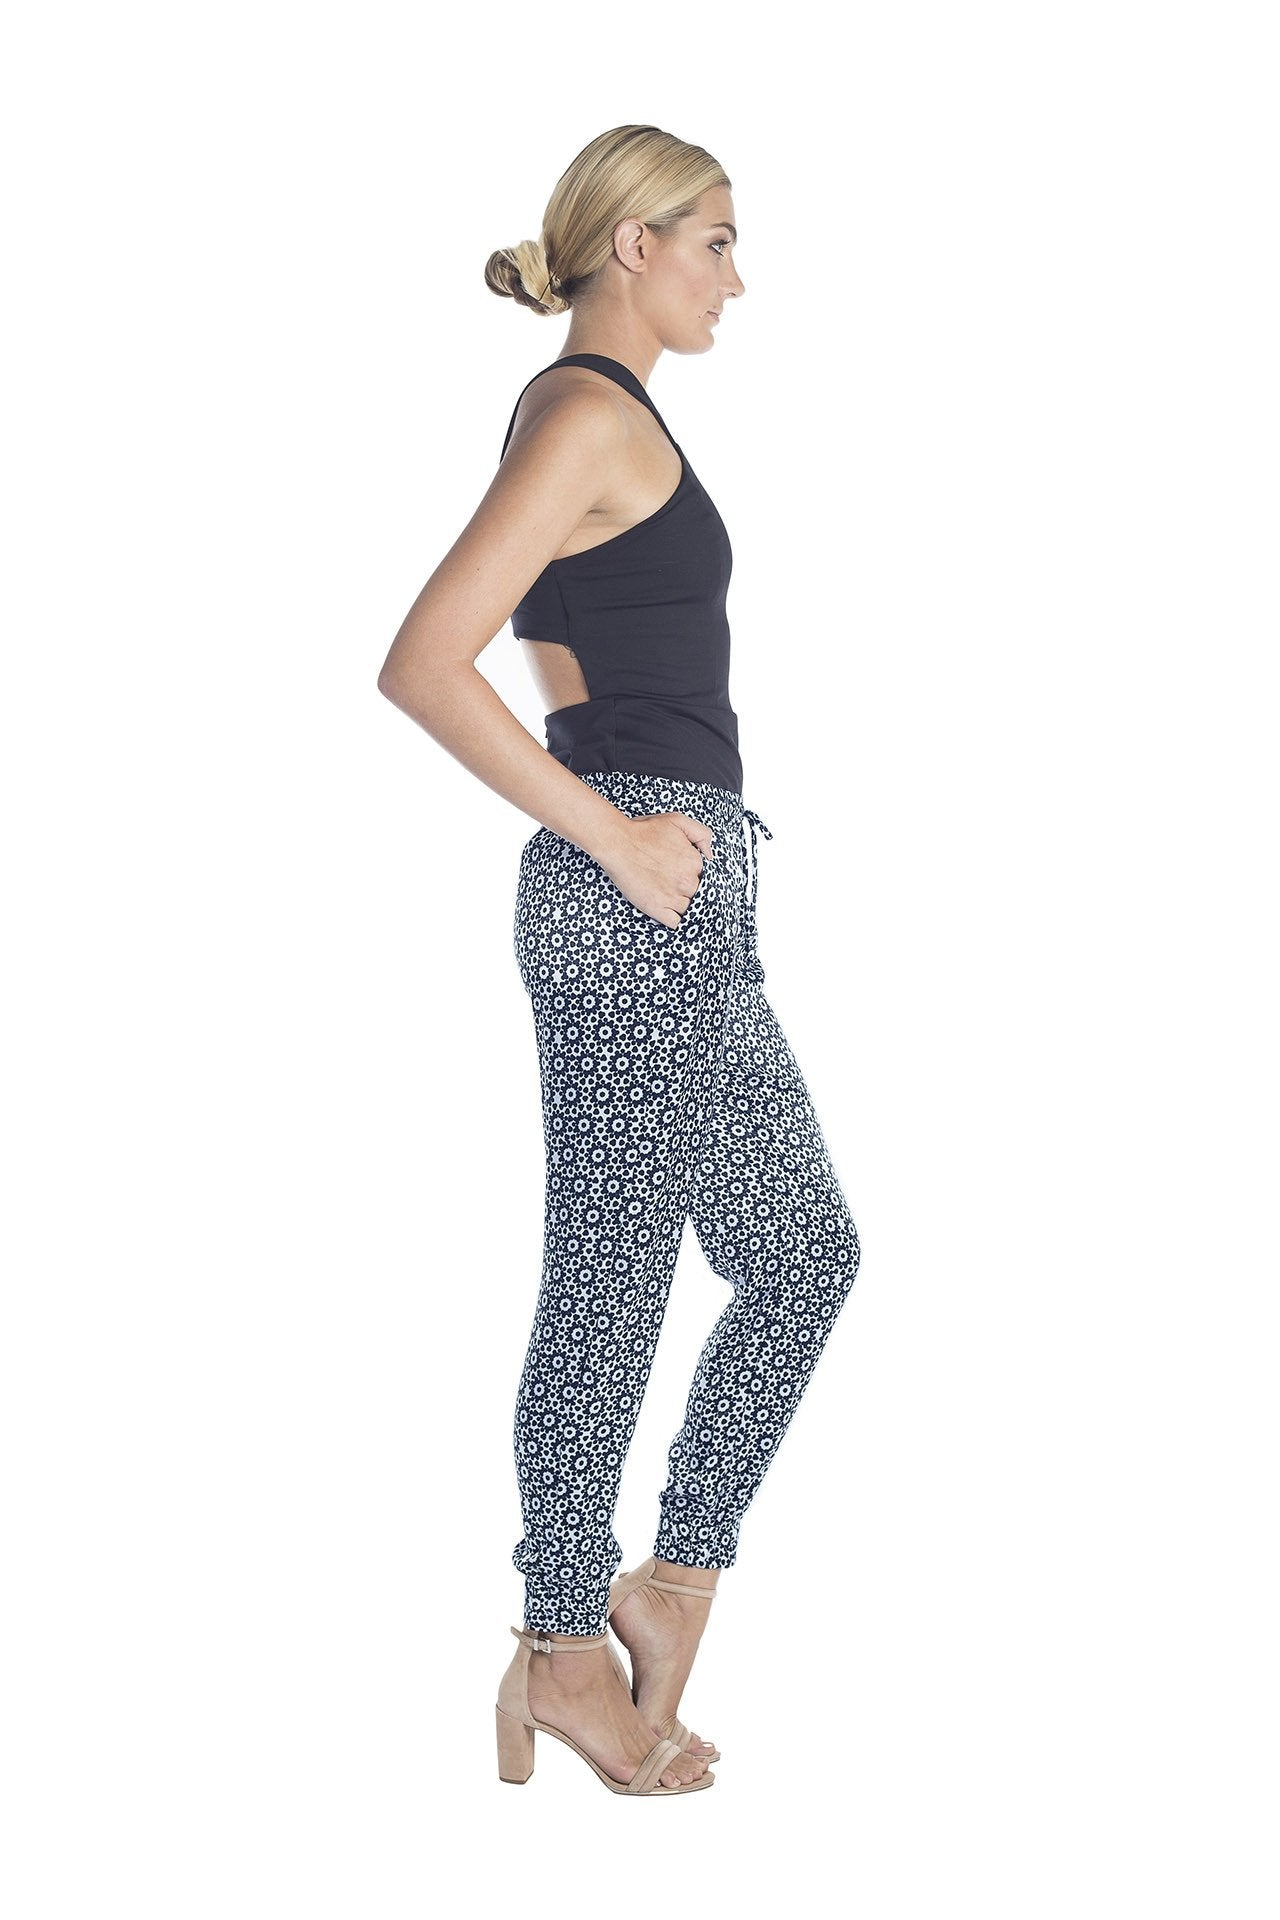 Side view of womens dressy track pants of a black and white mantra designed by artist John Zoller